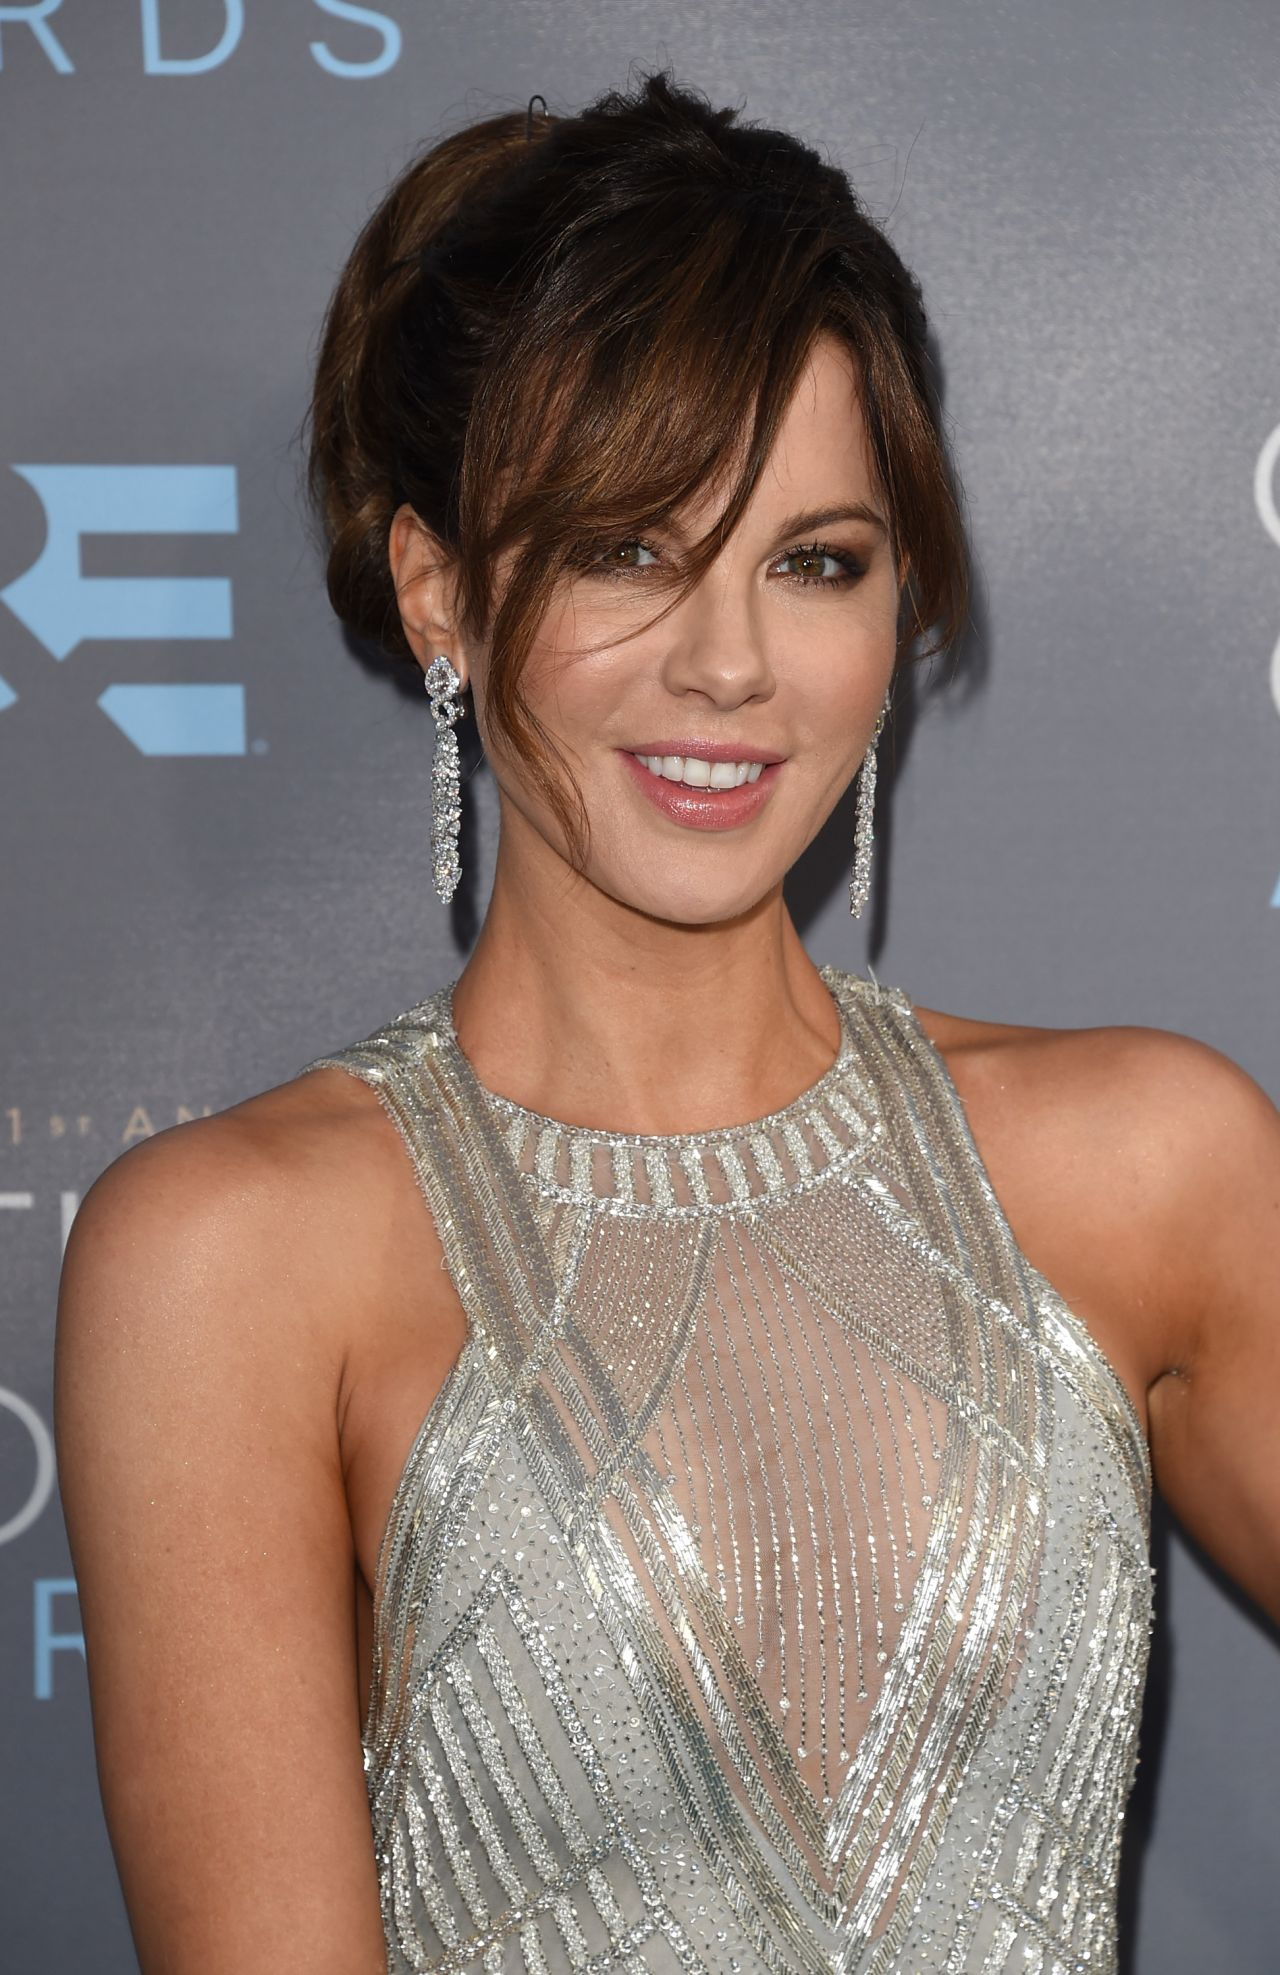 kate-beckinsale-2016-critics-choice-awards-in-santa-monica-4